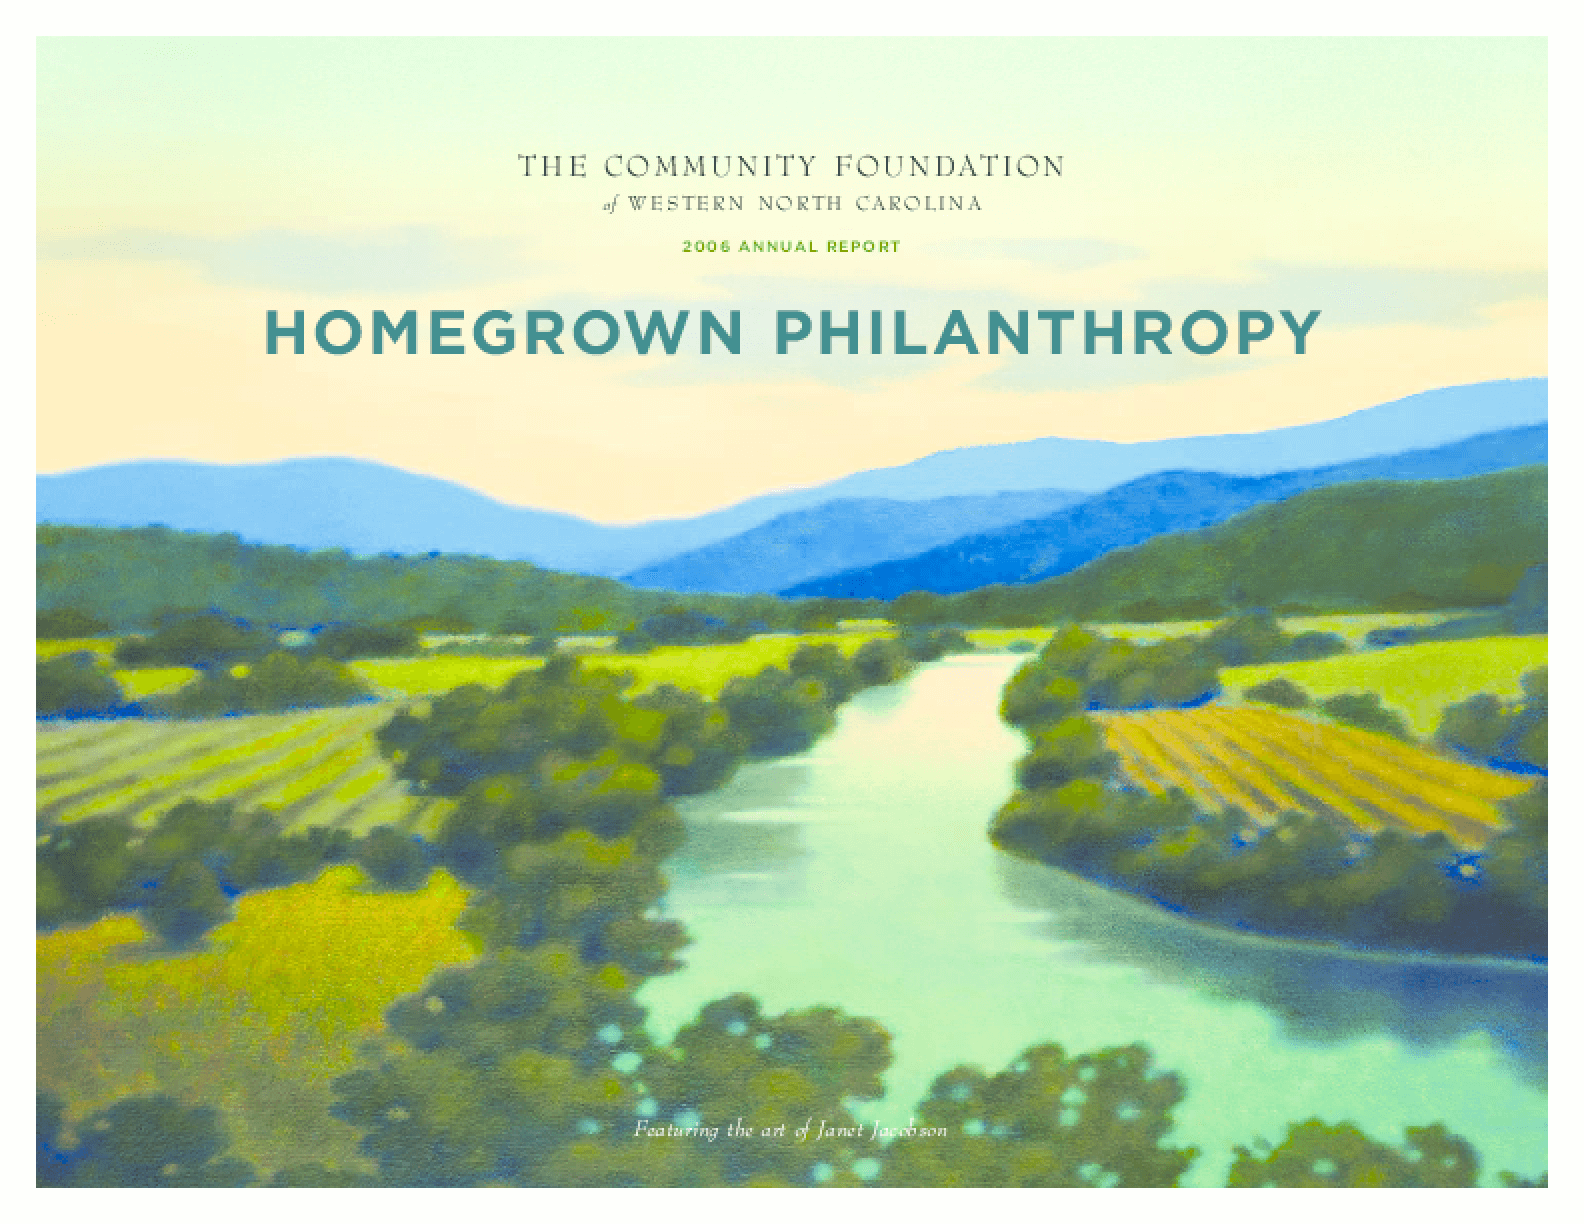 Community Foundation of Western North Carolina - 2006 Annual Report